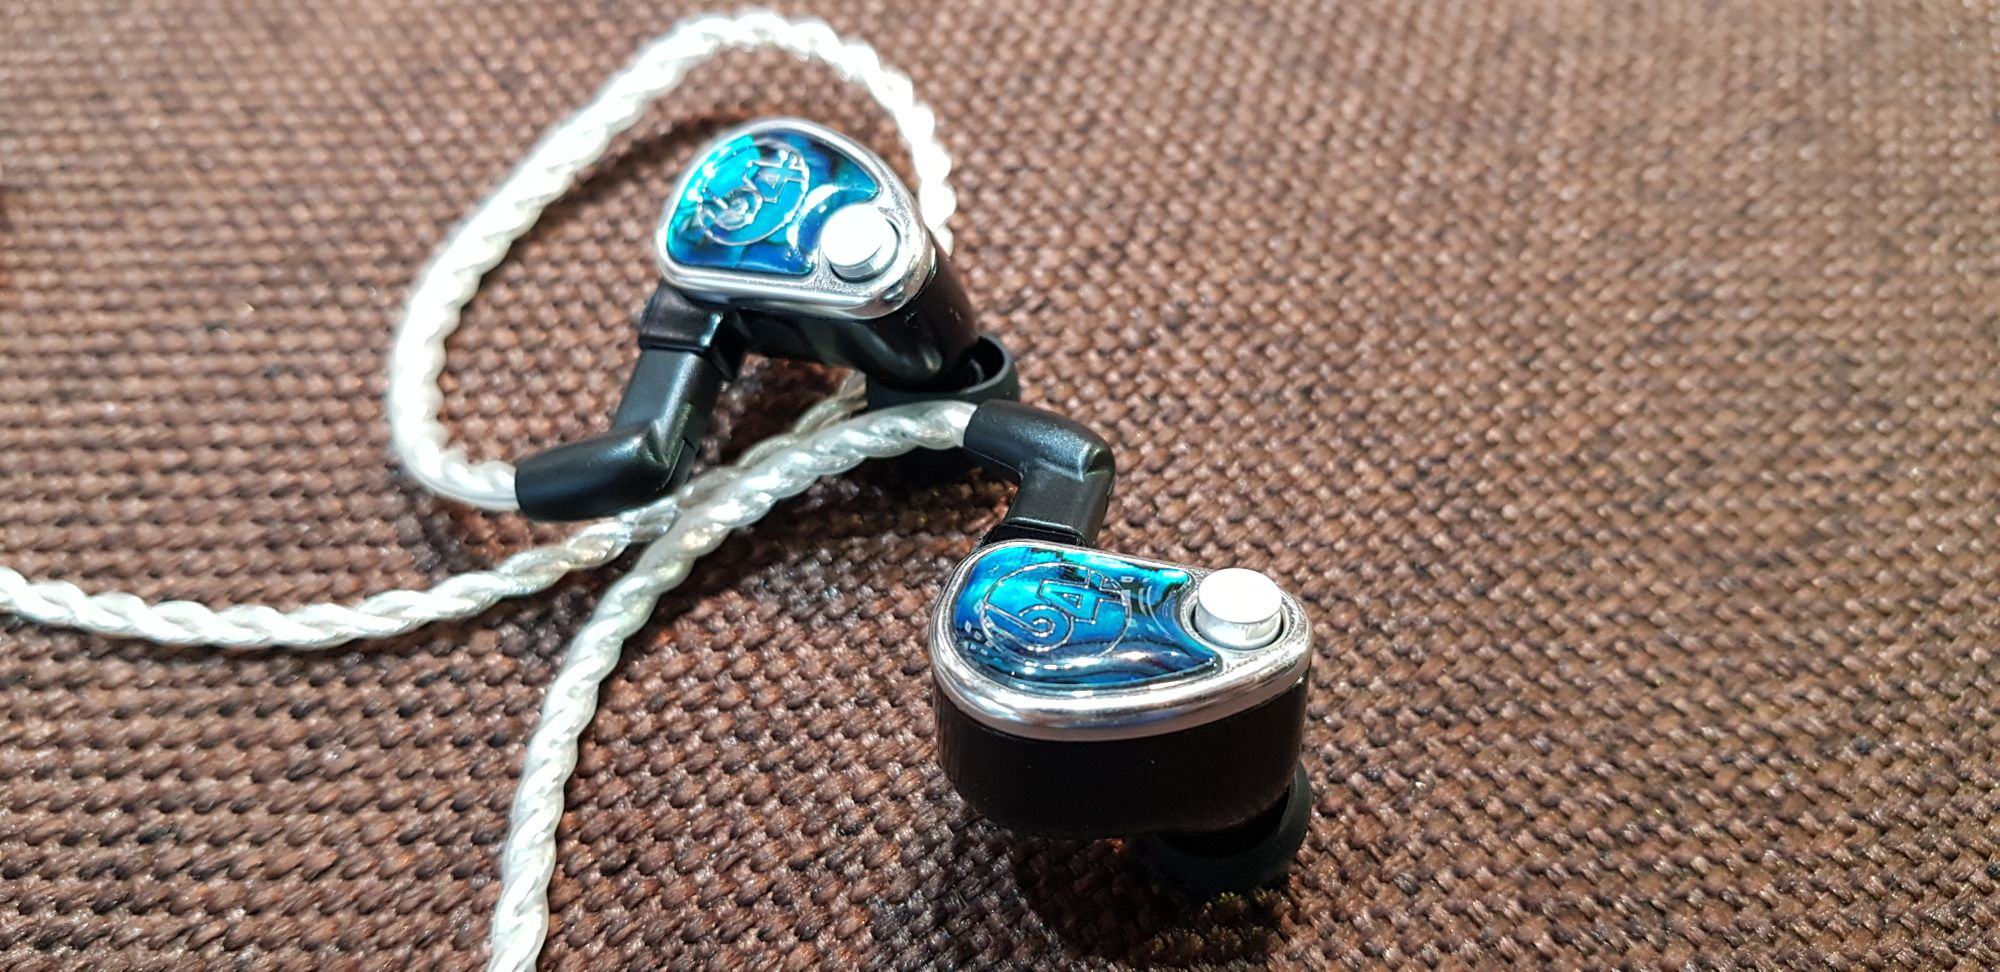 64 Audio Nio quick impressions